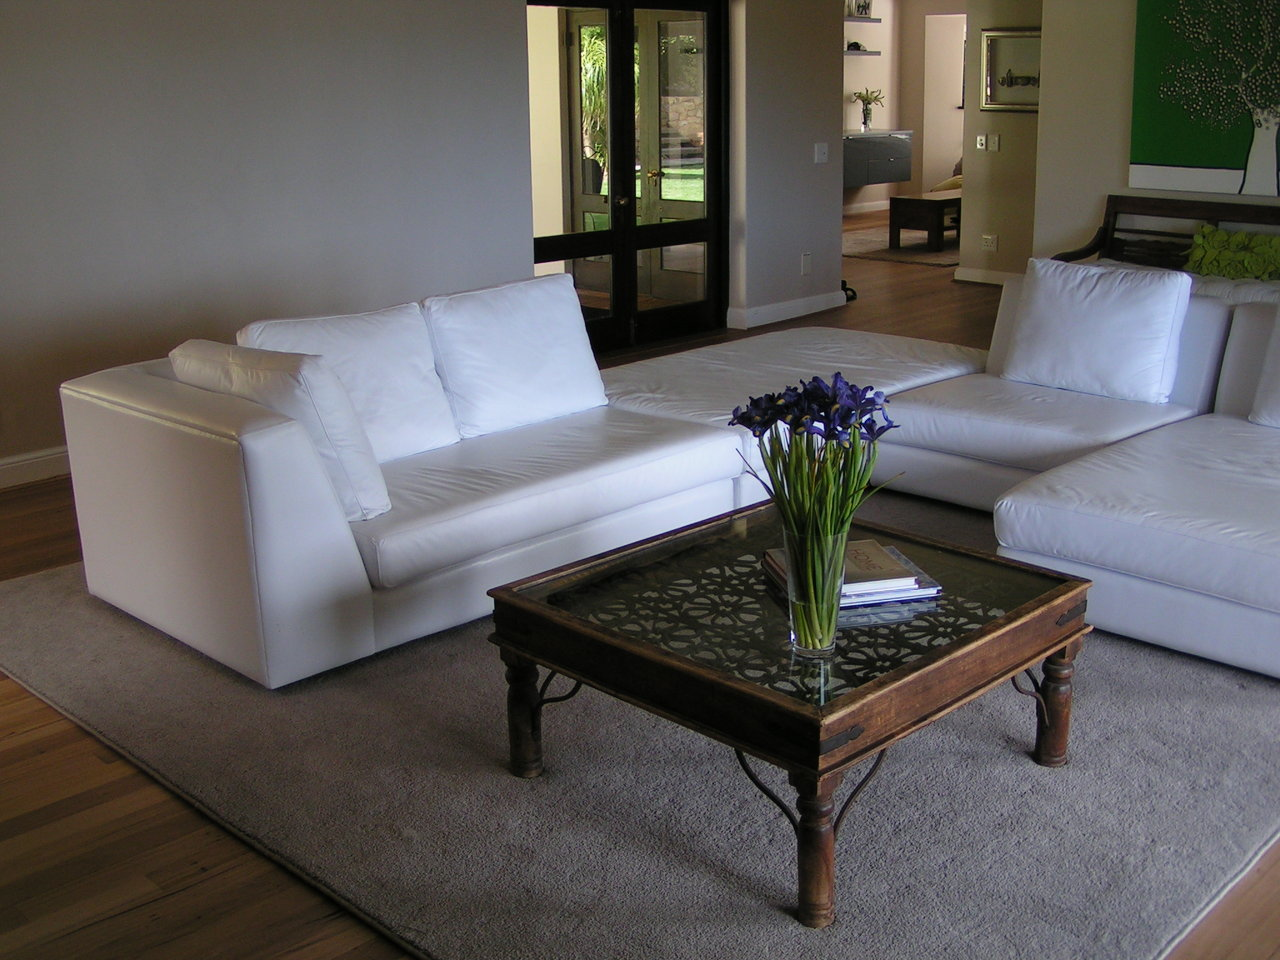 Mark Miller Furniture Design | Couch